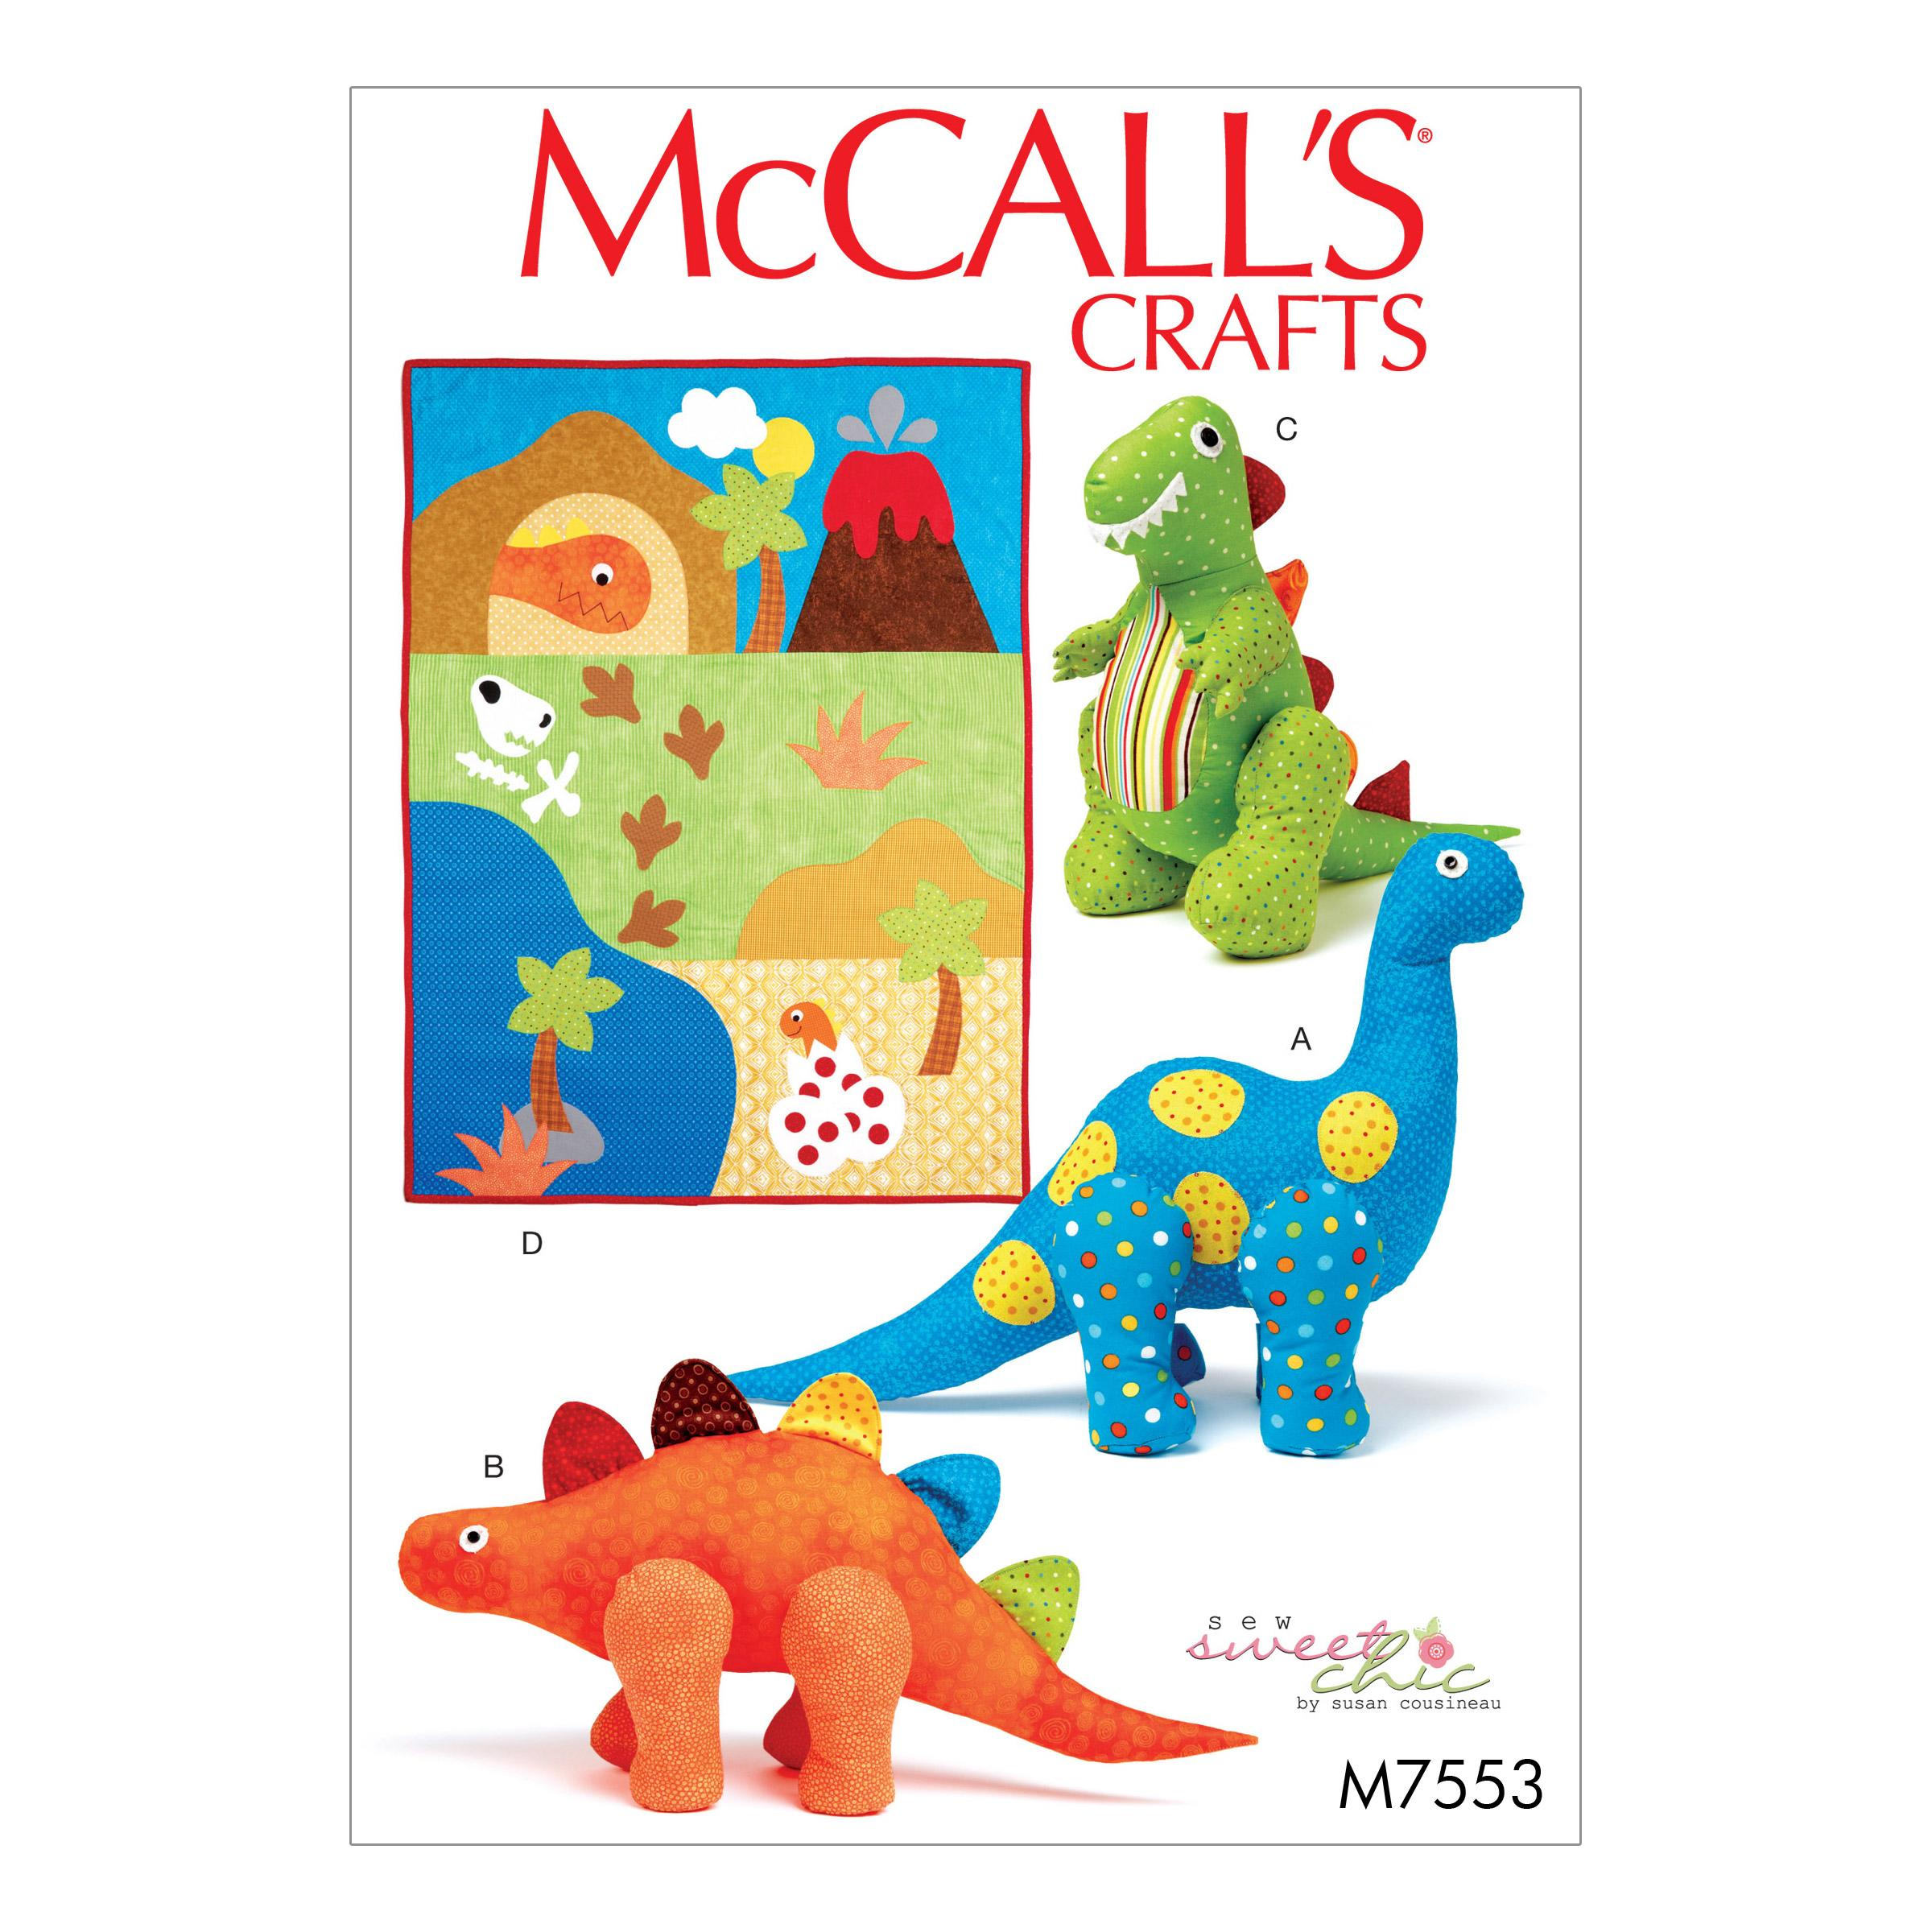 McCalls M7553 Crafts Dolls & Toys